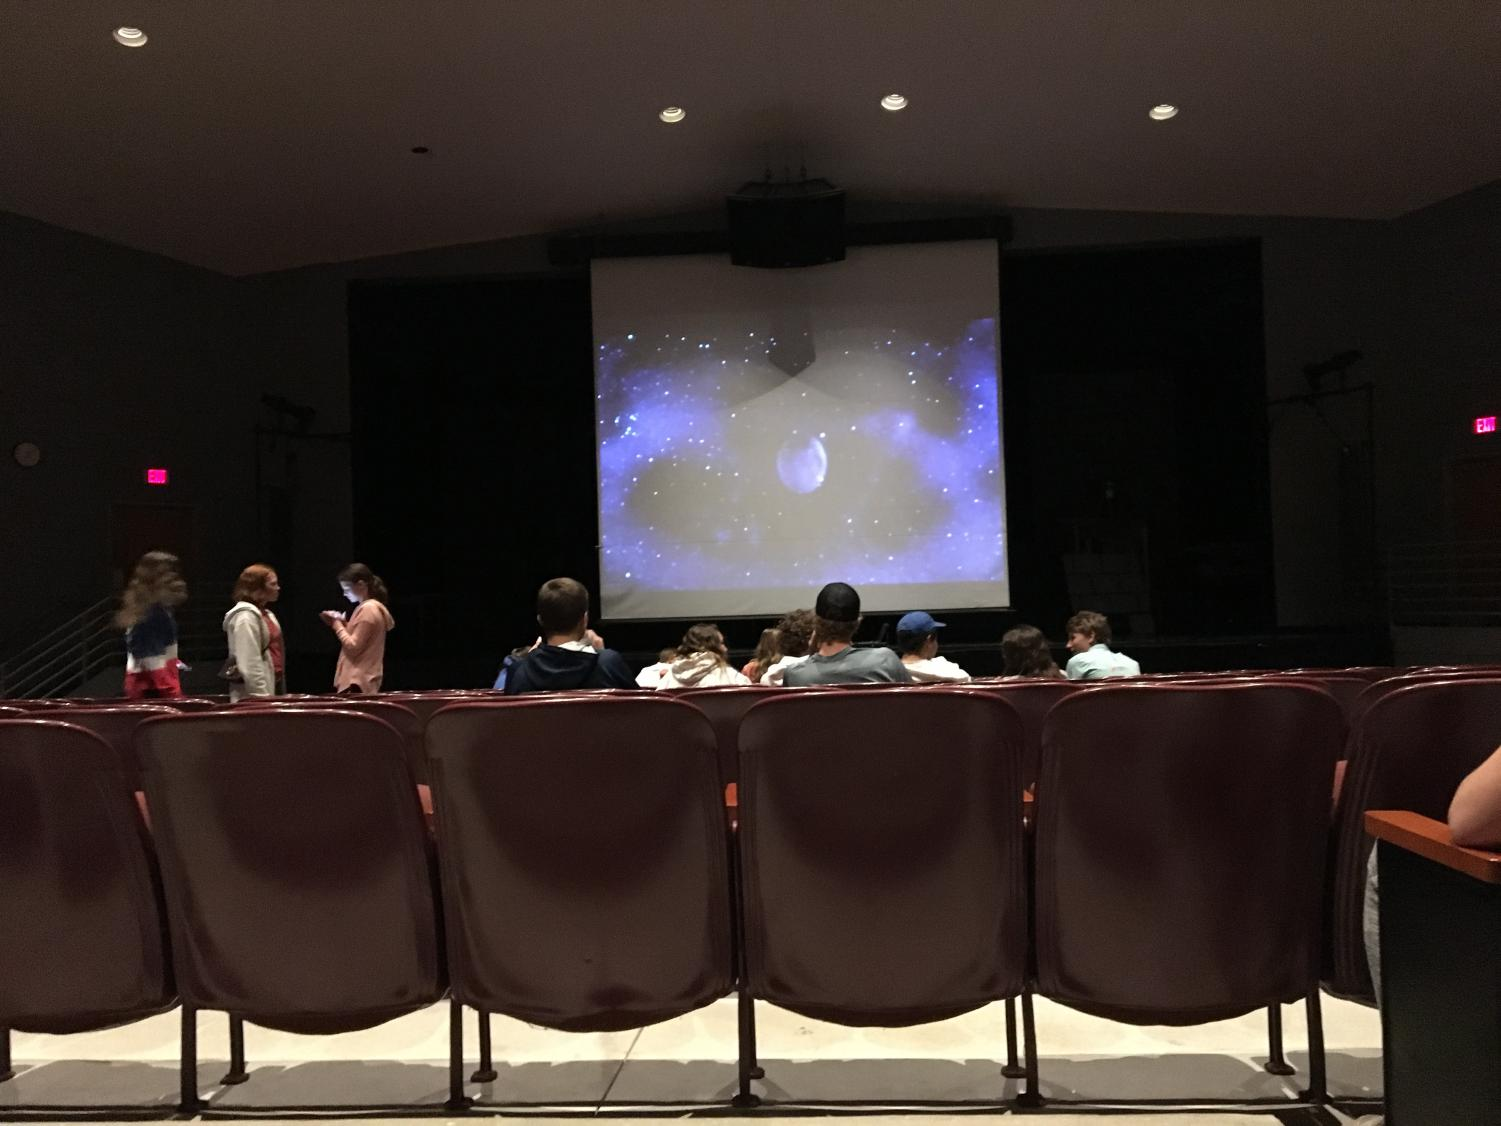 North Campus Theater on Homecoming Movie Night